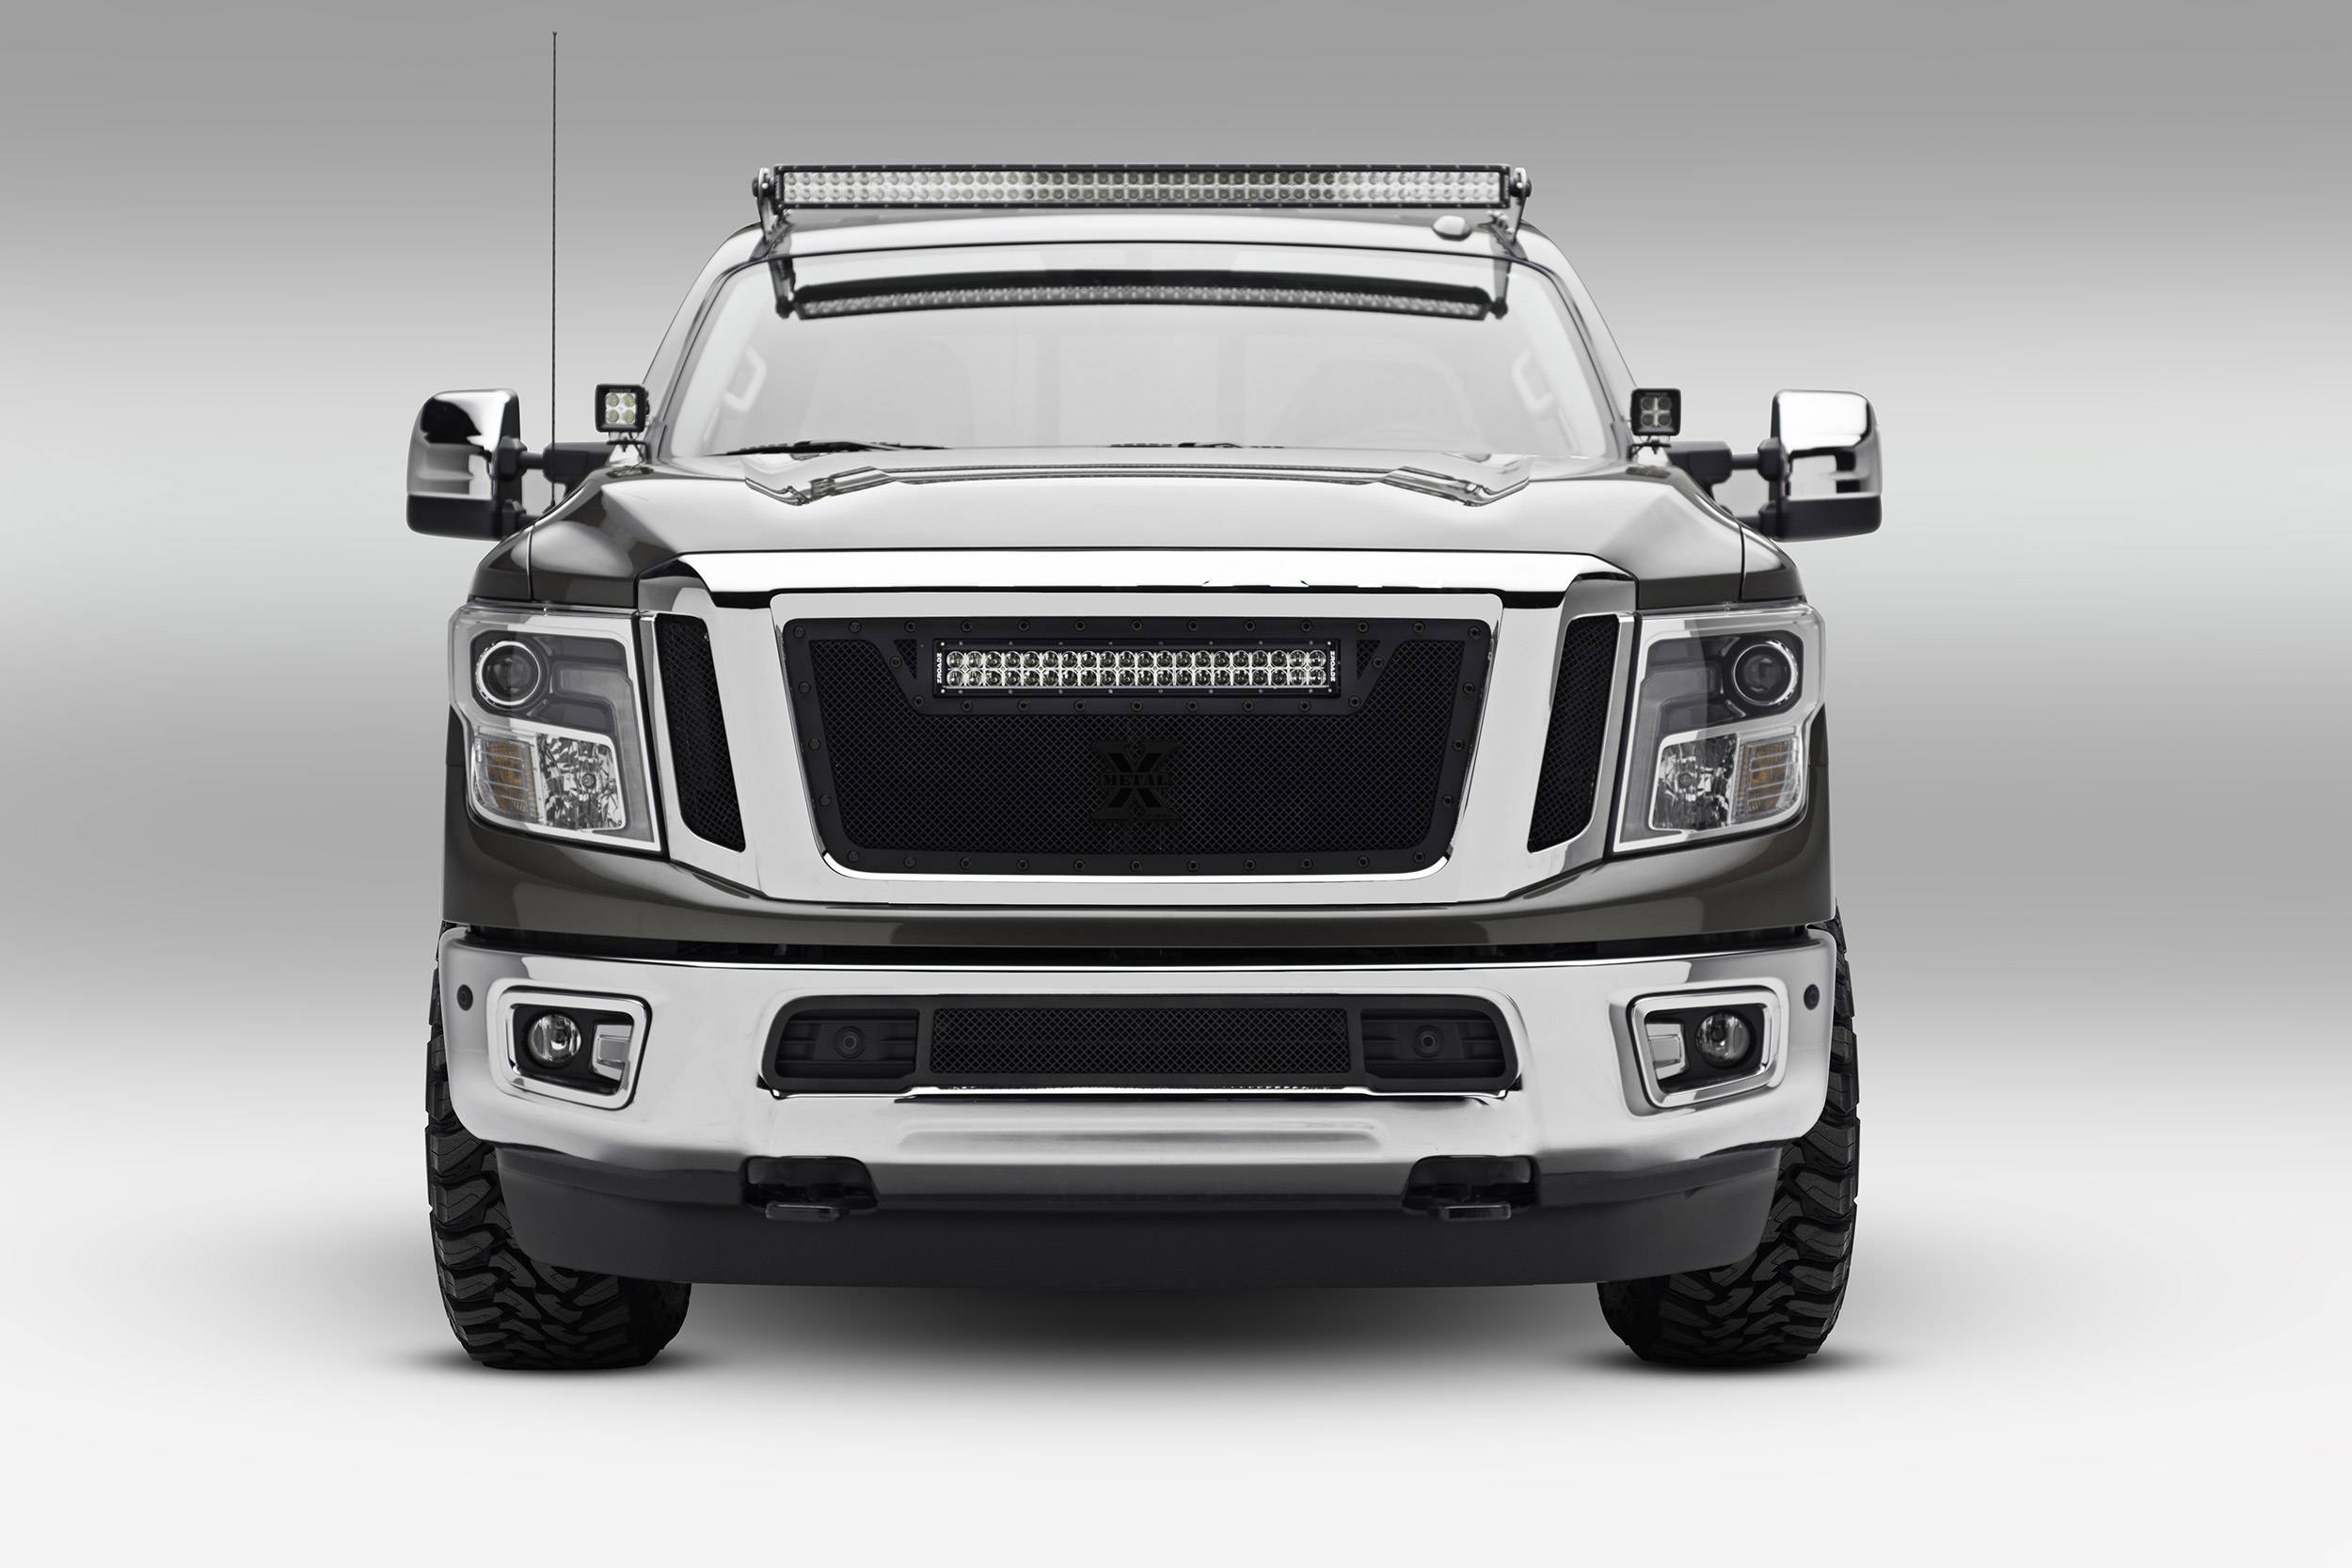 2016-2019 Nissan Titan Front Roof LED Bracket to mount (1) 50 Inch Staight LED Light Bar - PN #Z337181